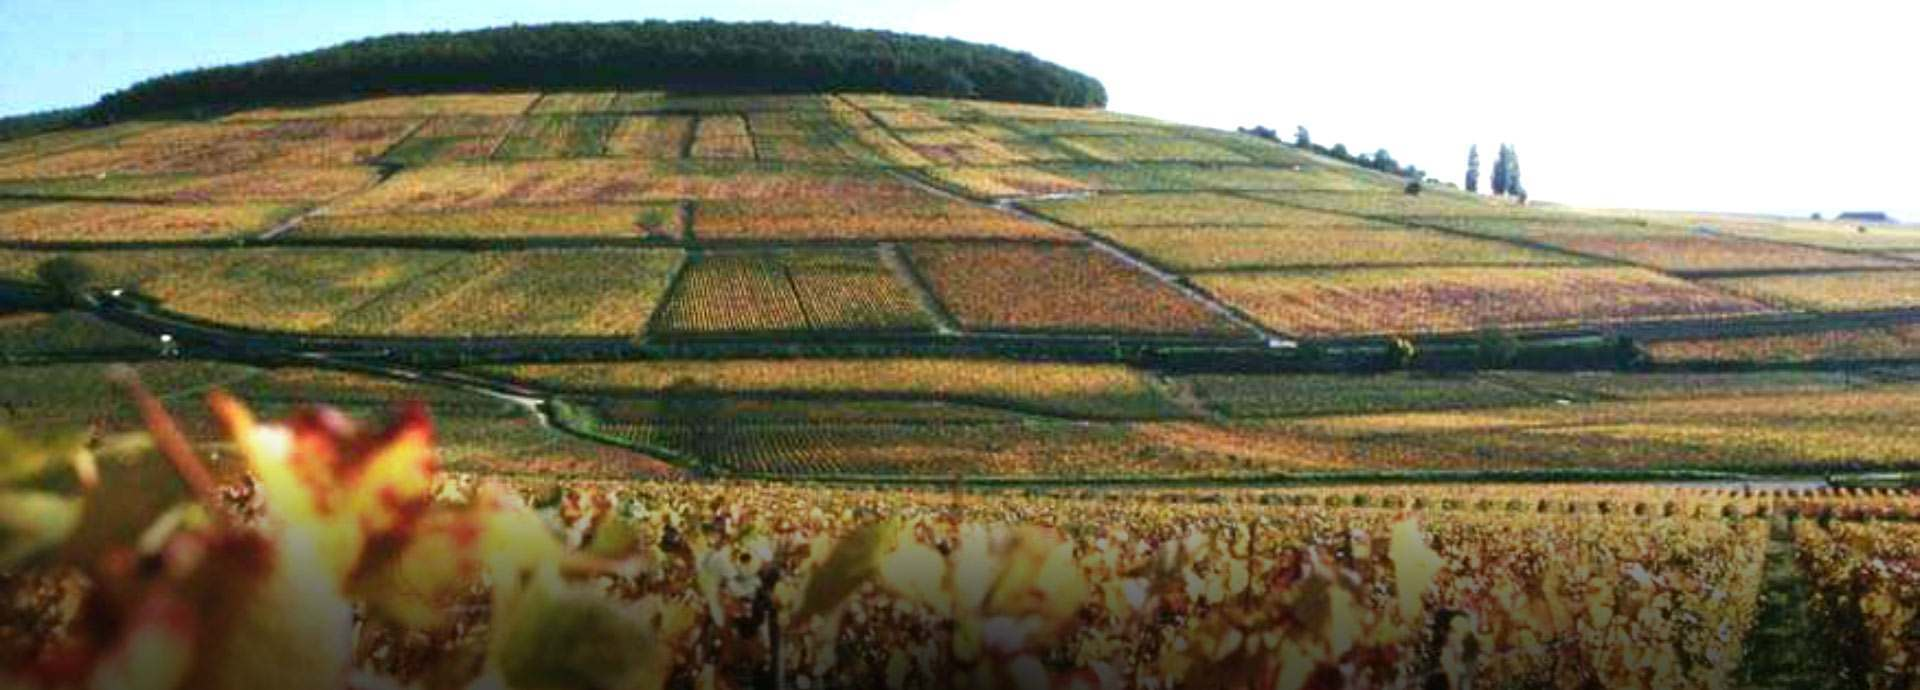 Domaine Bonneau du Martray banner image